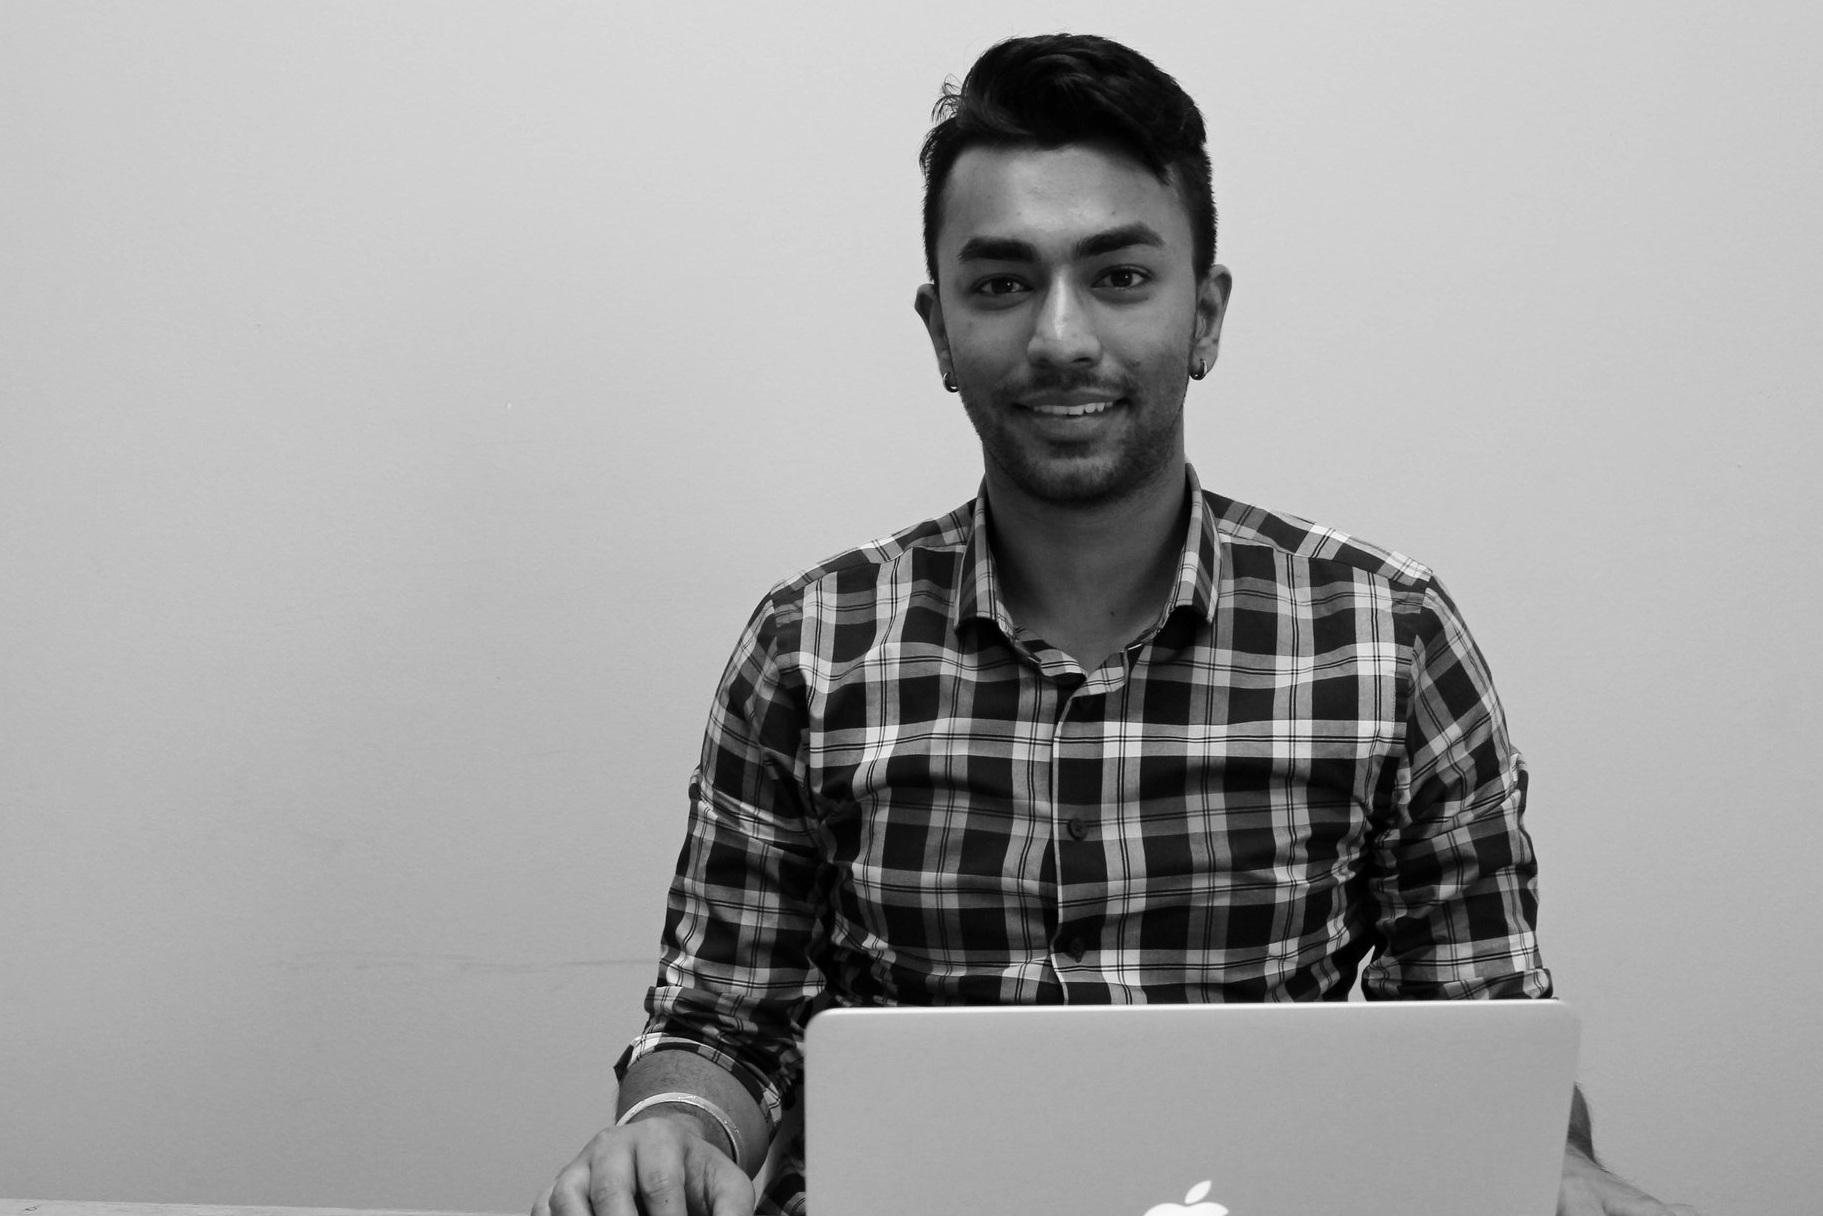 JaG - Education Specialist   Jag is Currently pursuing a honours degree in Computational Mathematics and is Looking to further his education by getting his Masters degree.   Fun Fact:  HE Was titled marshmallow king IN frosh WEEK.